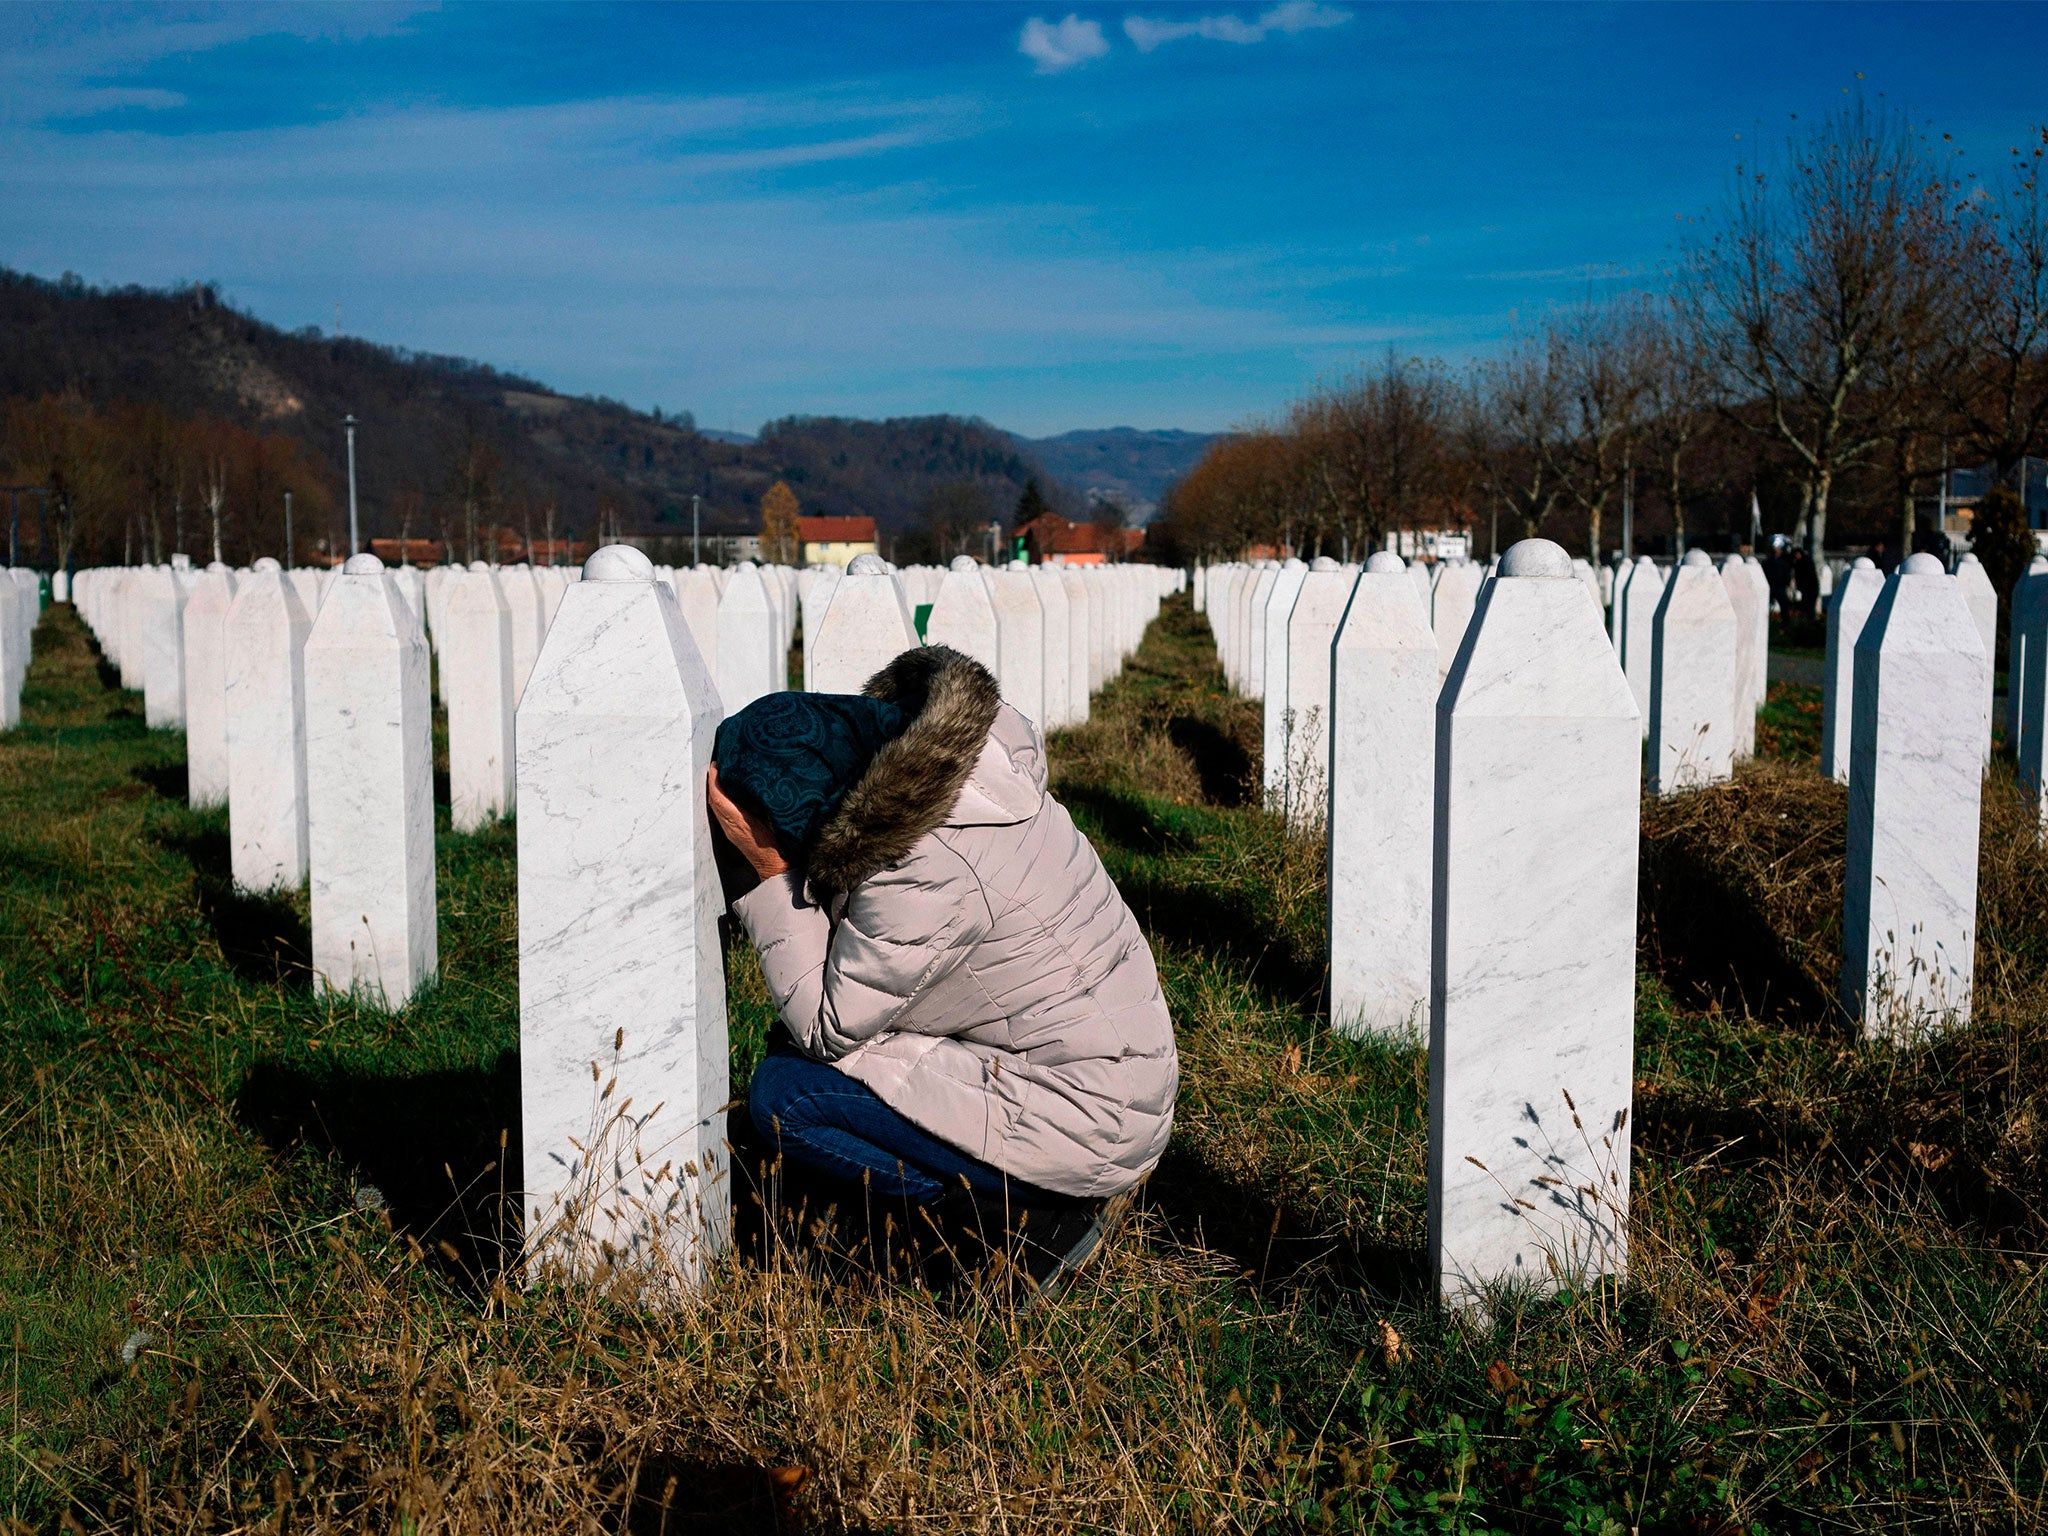 Srebrenica genocide survivor warns 'forces of division' in Europe raise chance of more bloodshed